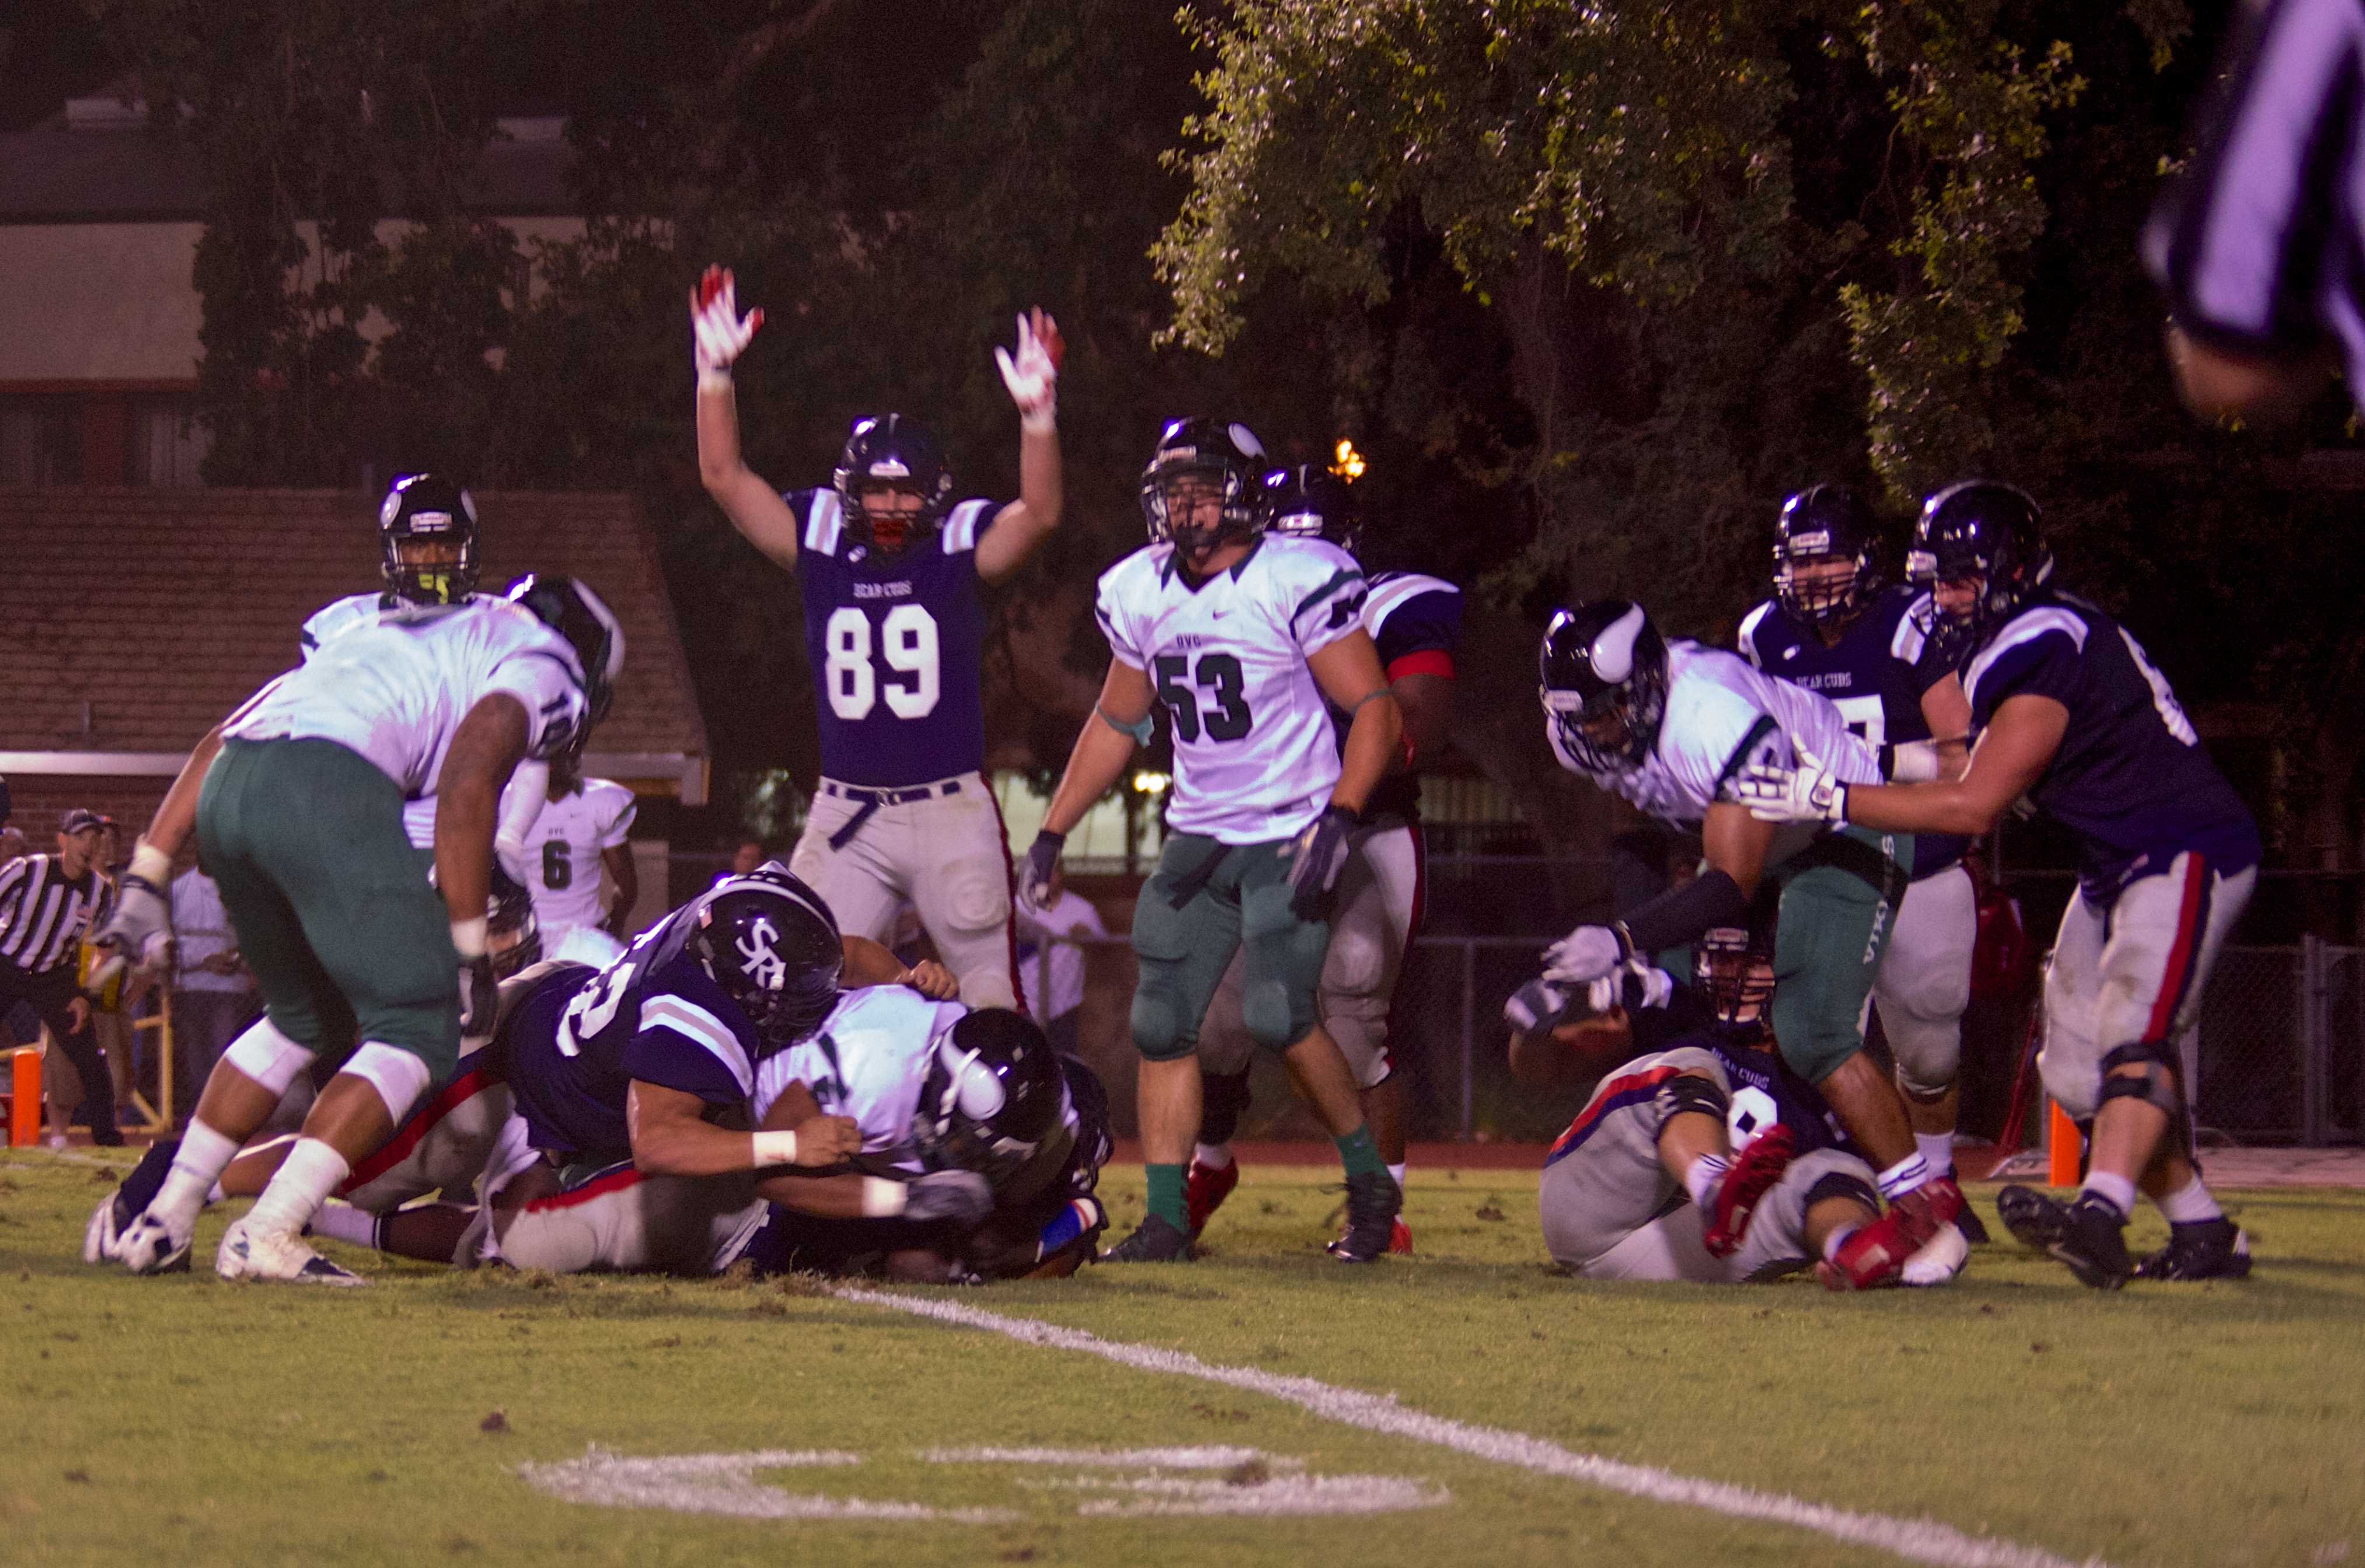 Arms raised by SRJC tight end Nick Reynolds as Bear Cubs' running back K'Lan Anderson rushes for a 1-yard touchdown against Diablo Valley College Sept. 13 in Santa Rosa.